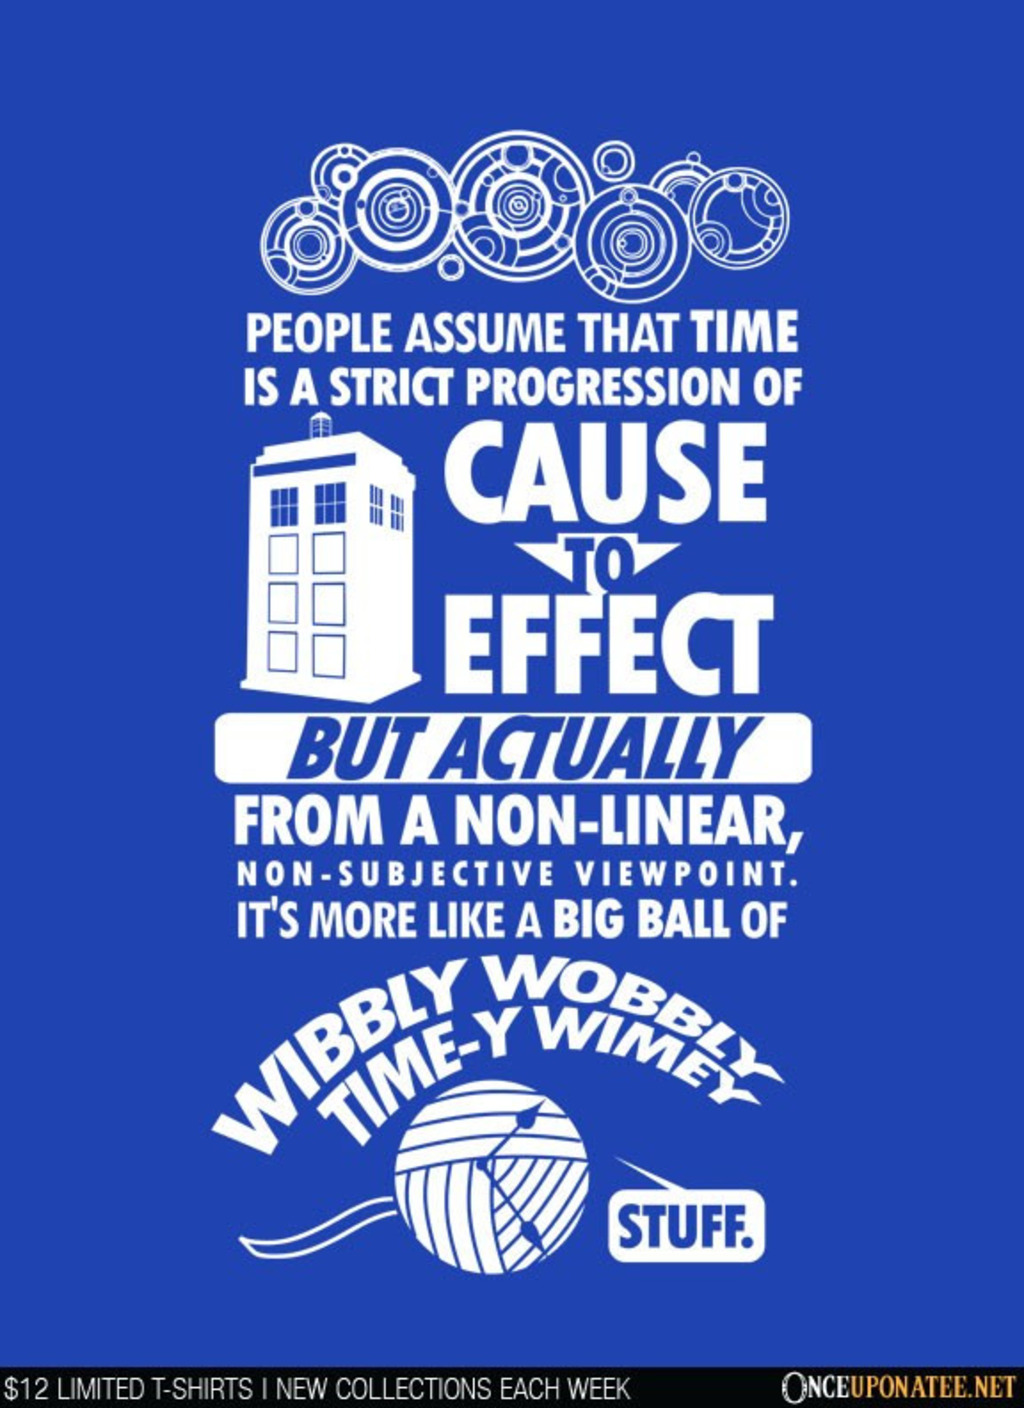 Once Upon a Tee: Timey Wimey Tee